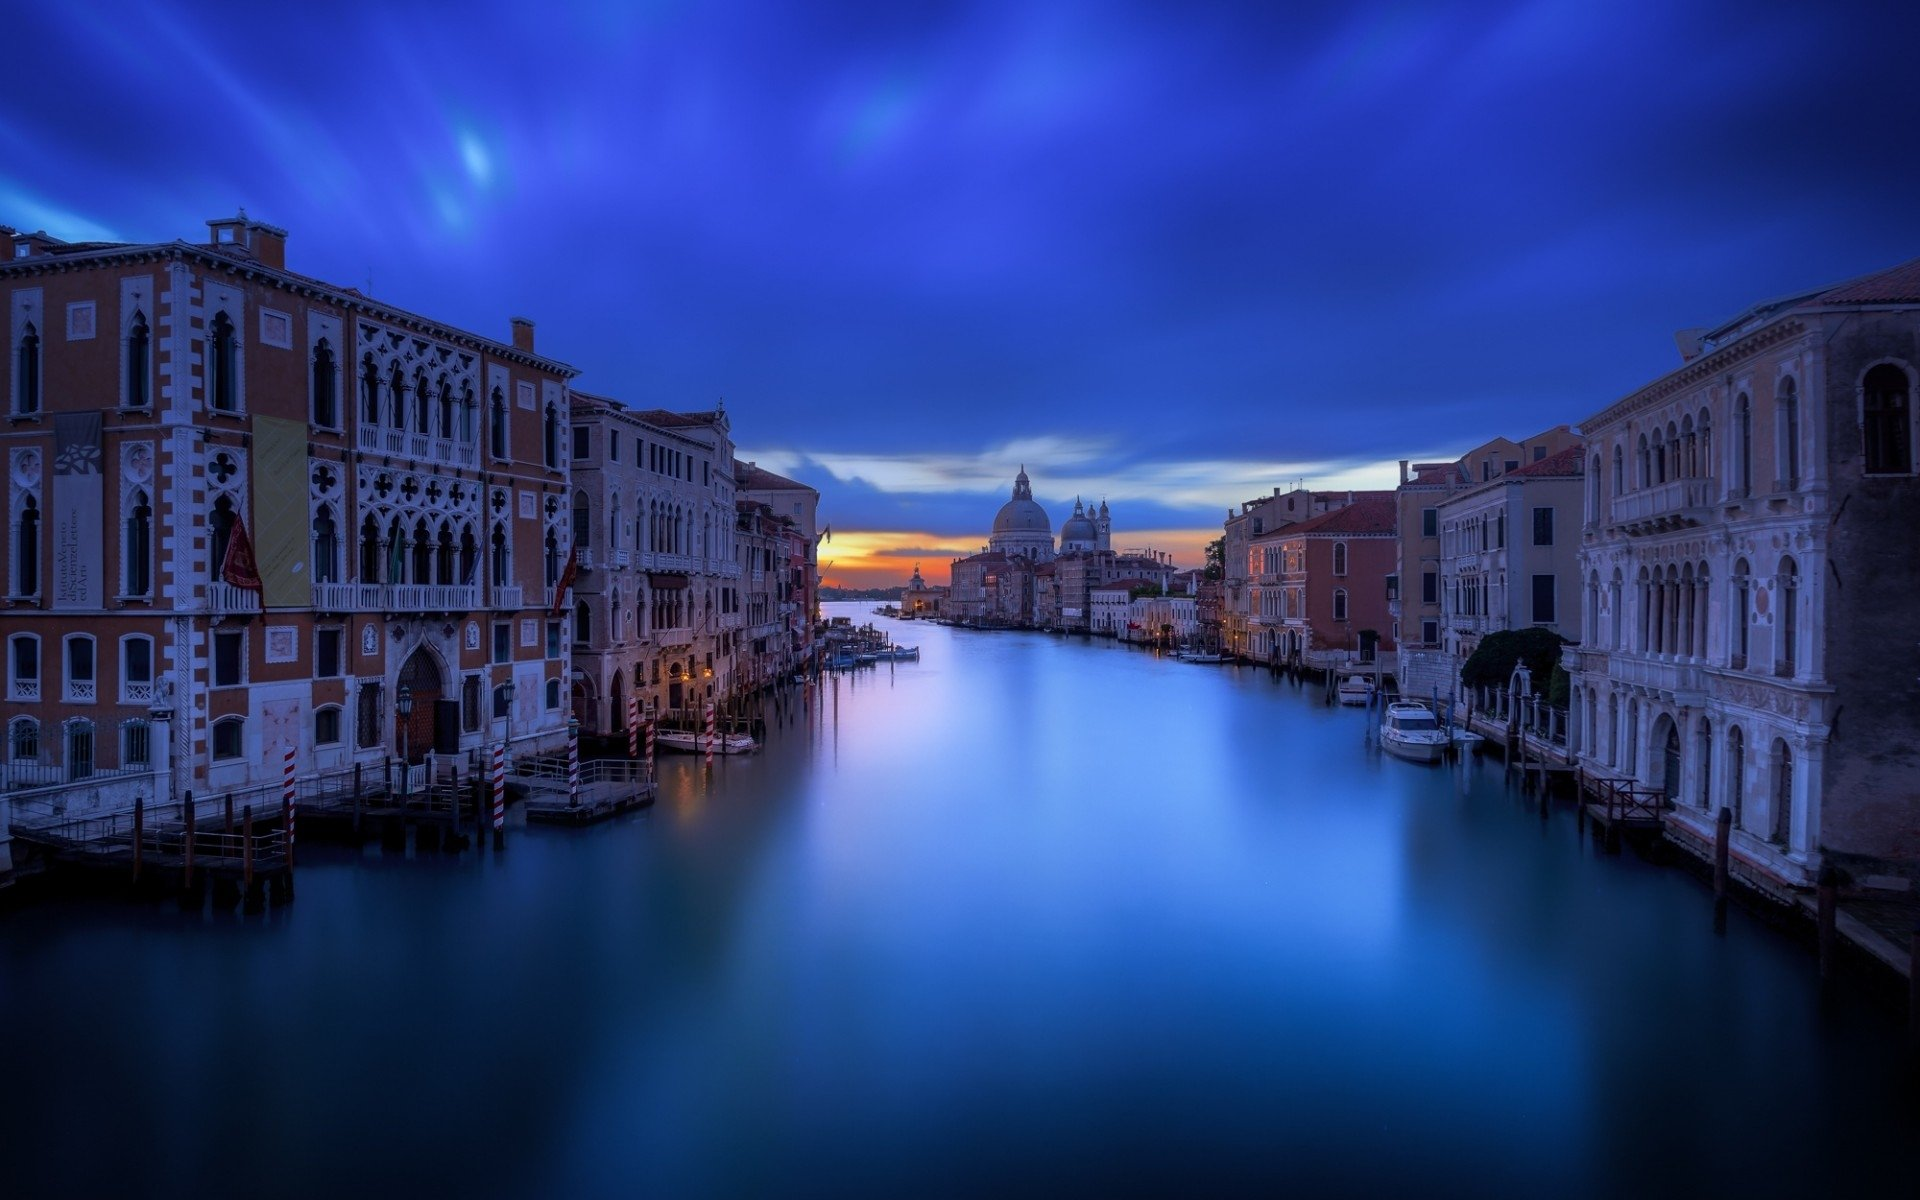 Man Made - Venice  Architecture Building Dusk Grand Canal Wallpaper